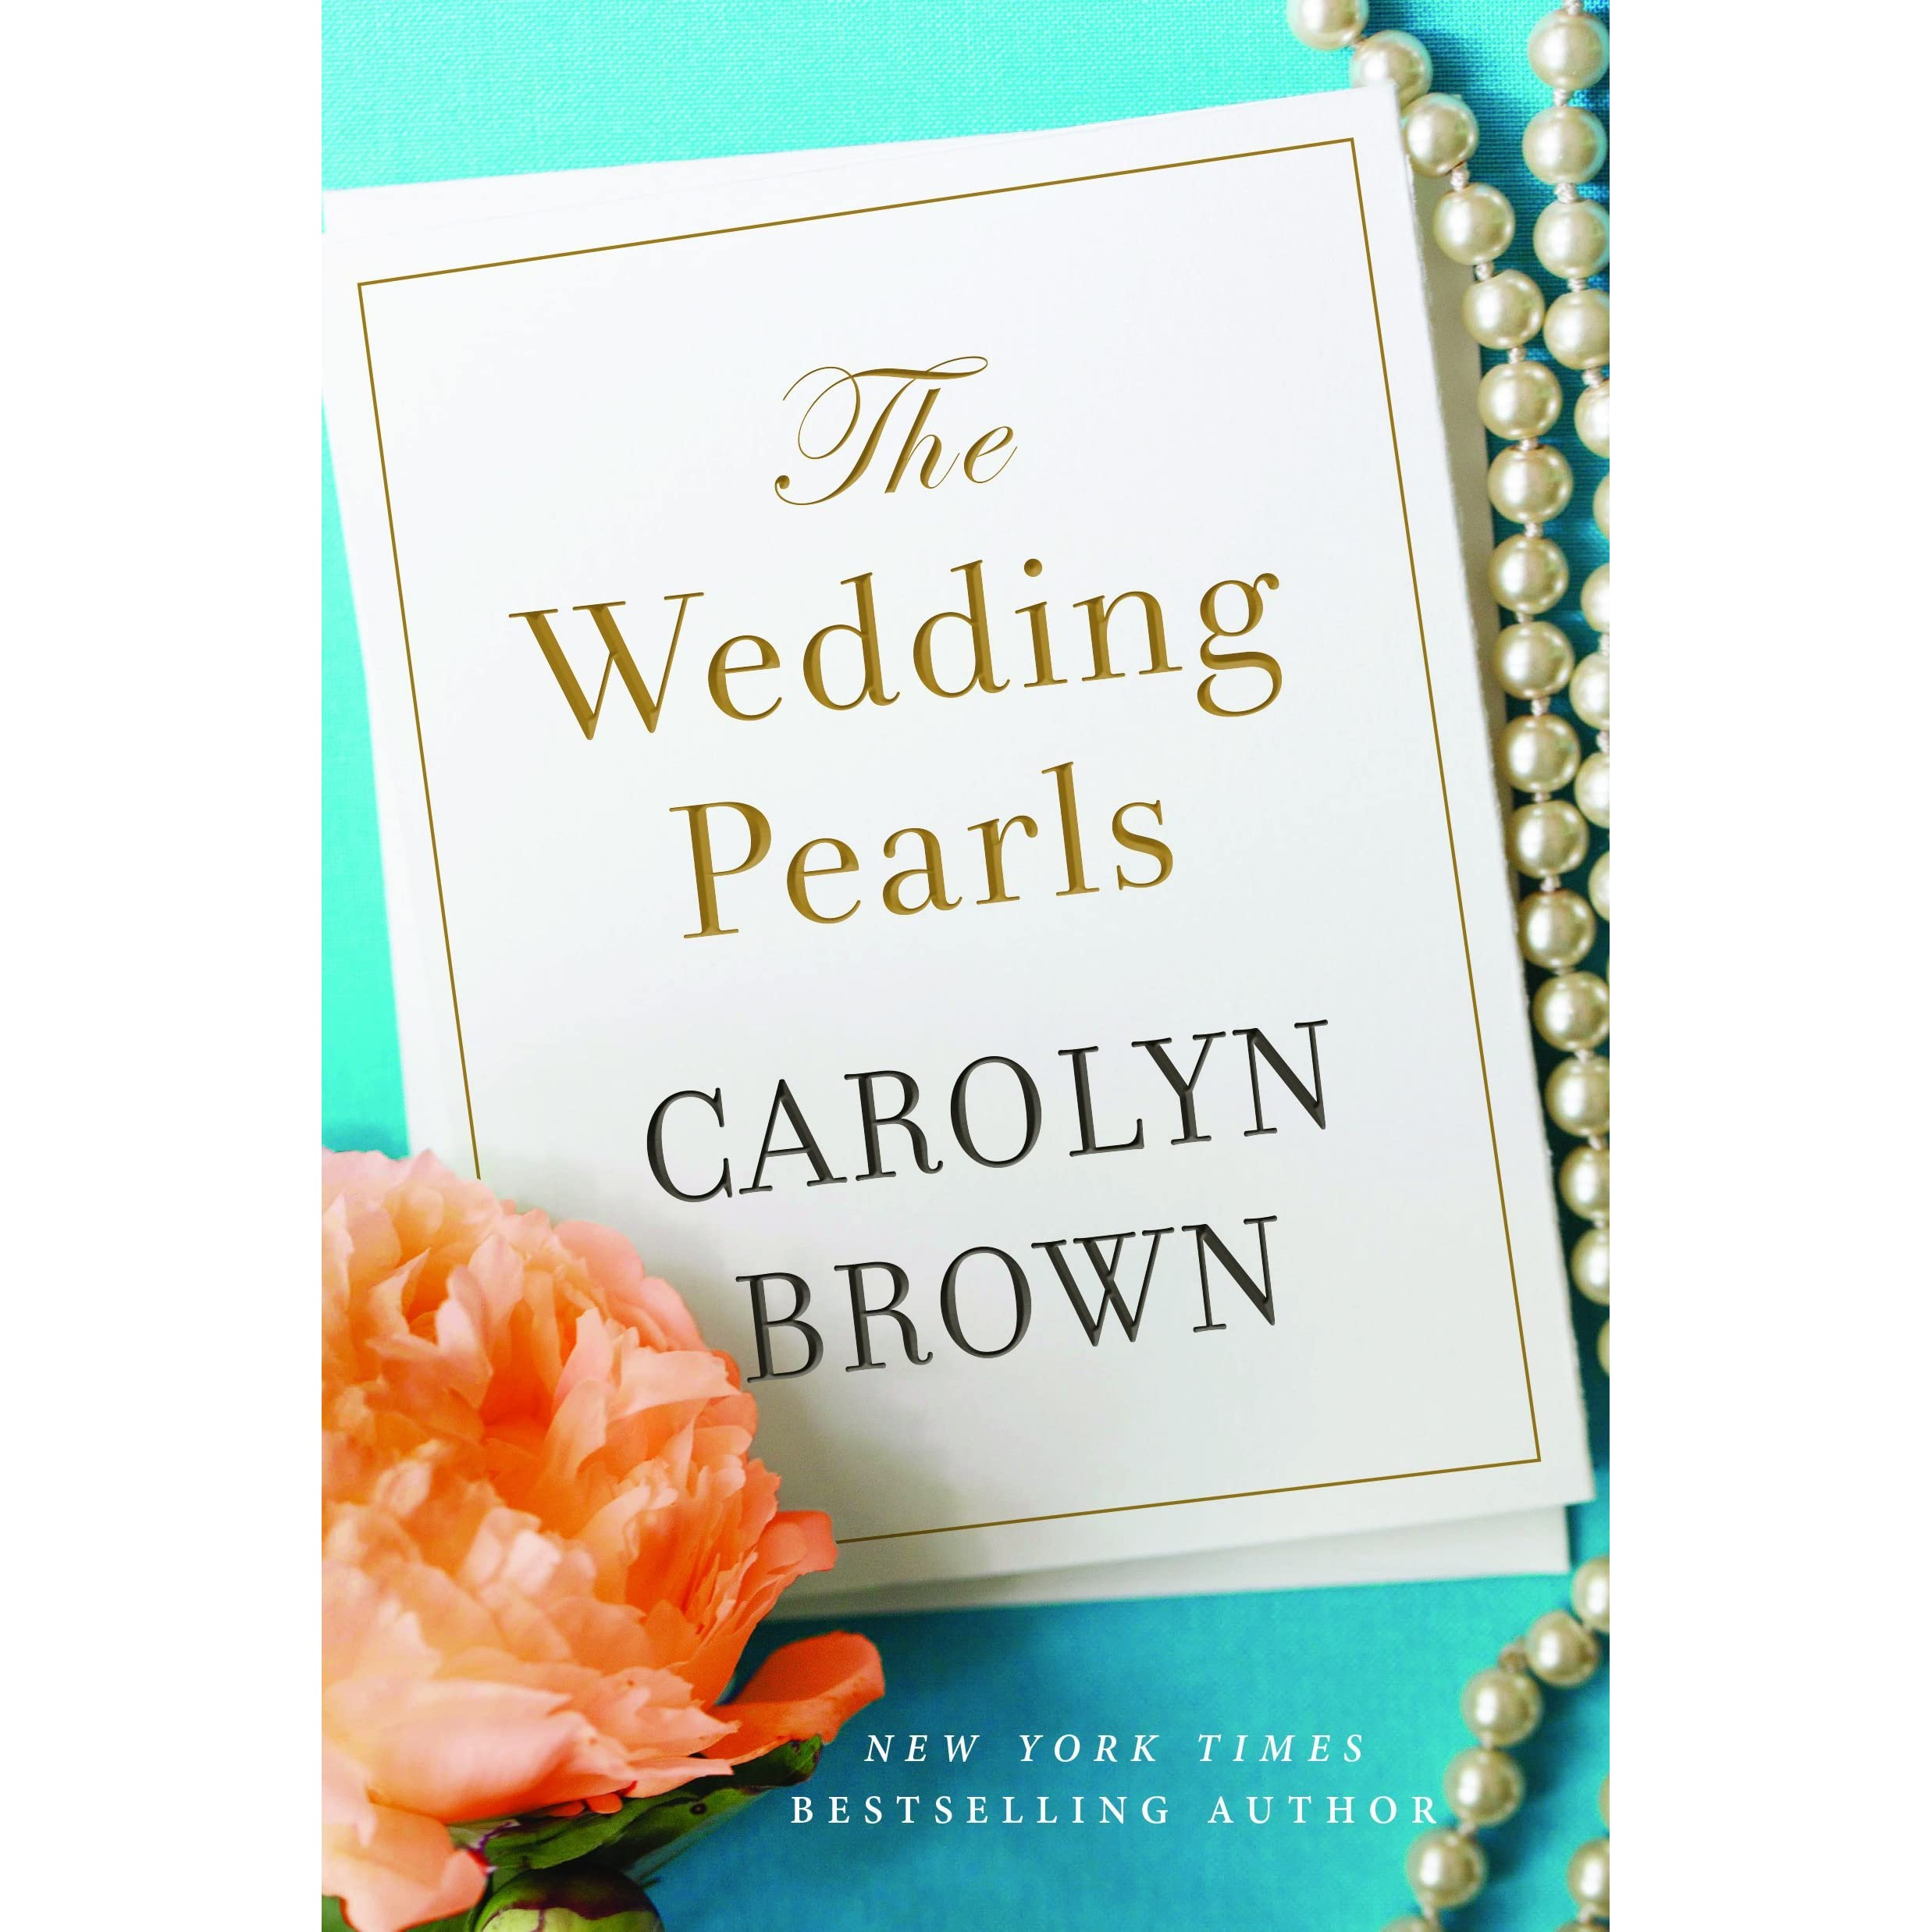 Quotes About Pearls And Friendship The Wedding Pearlscarolyn Brown